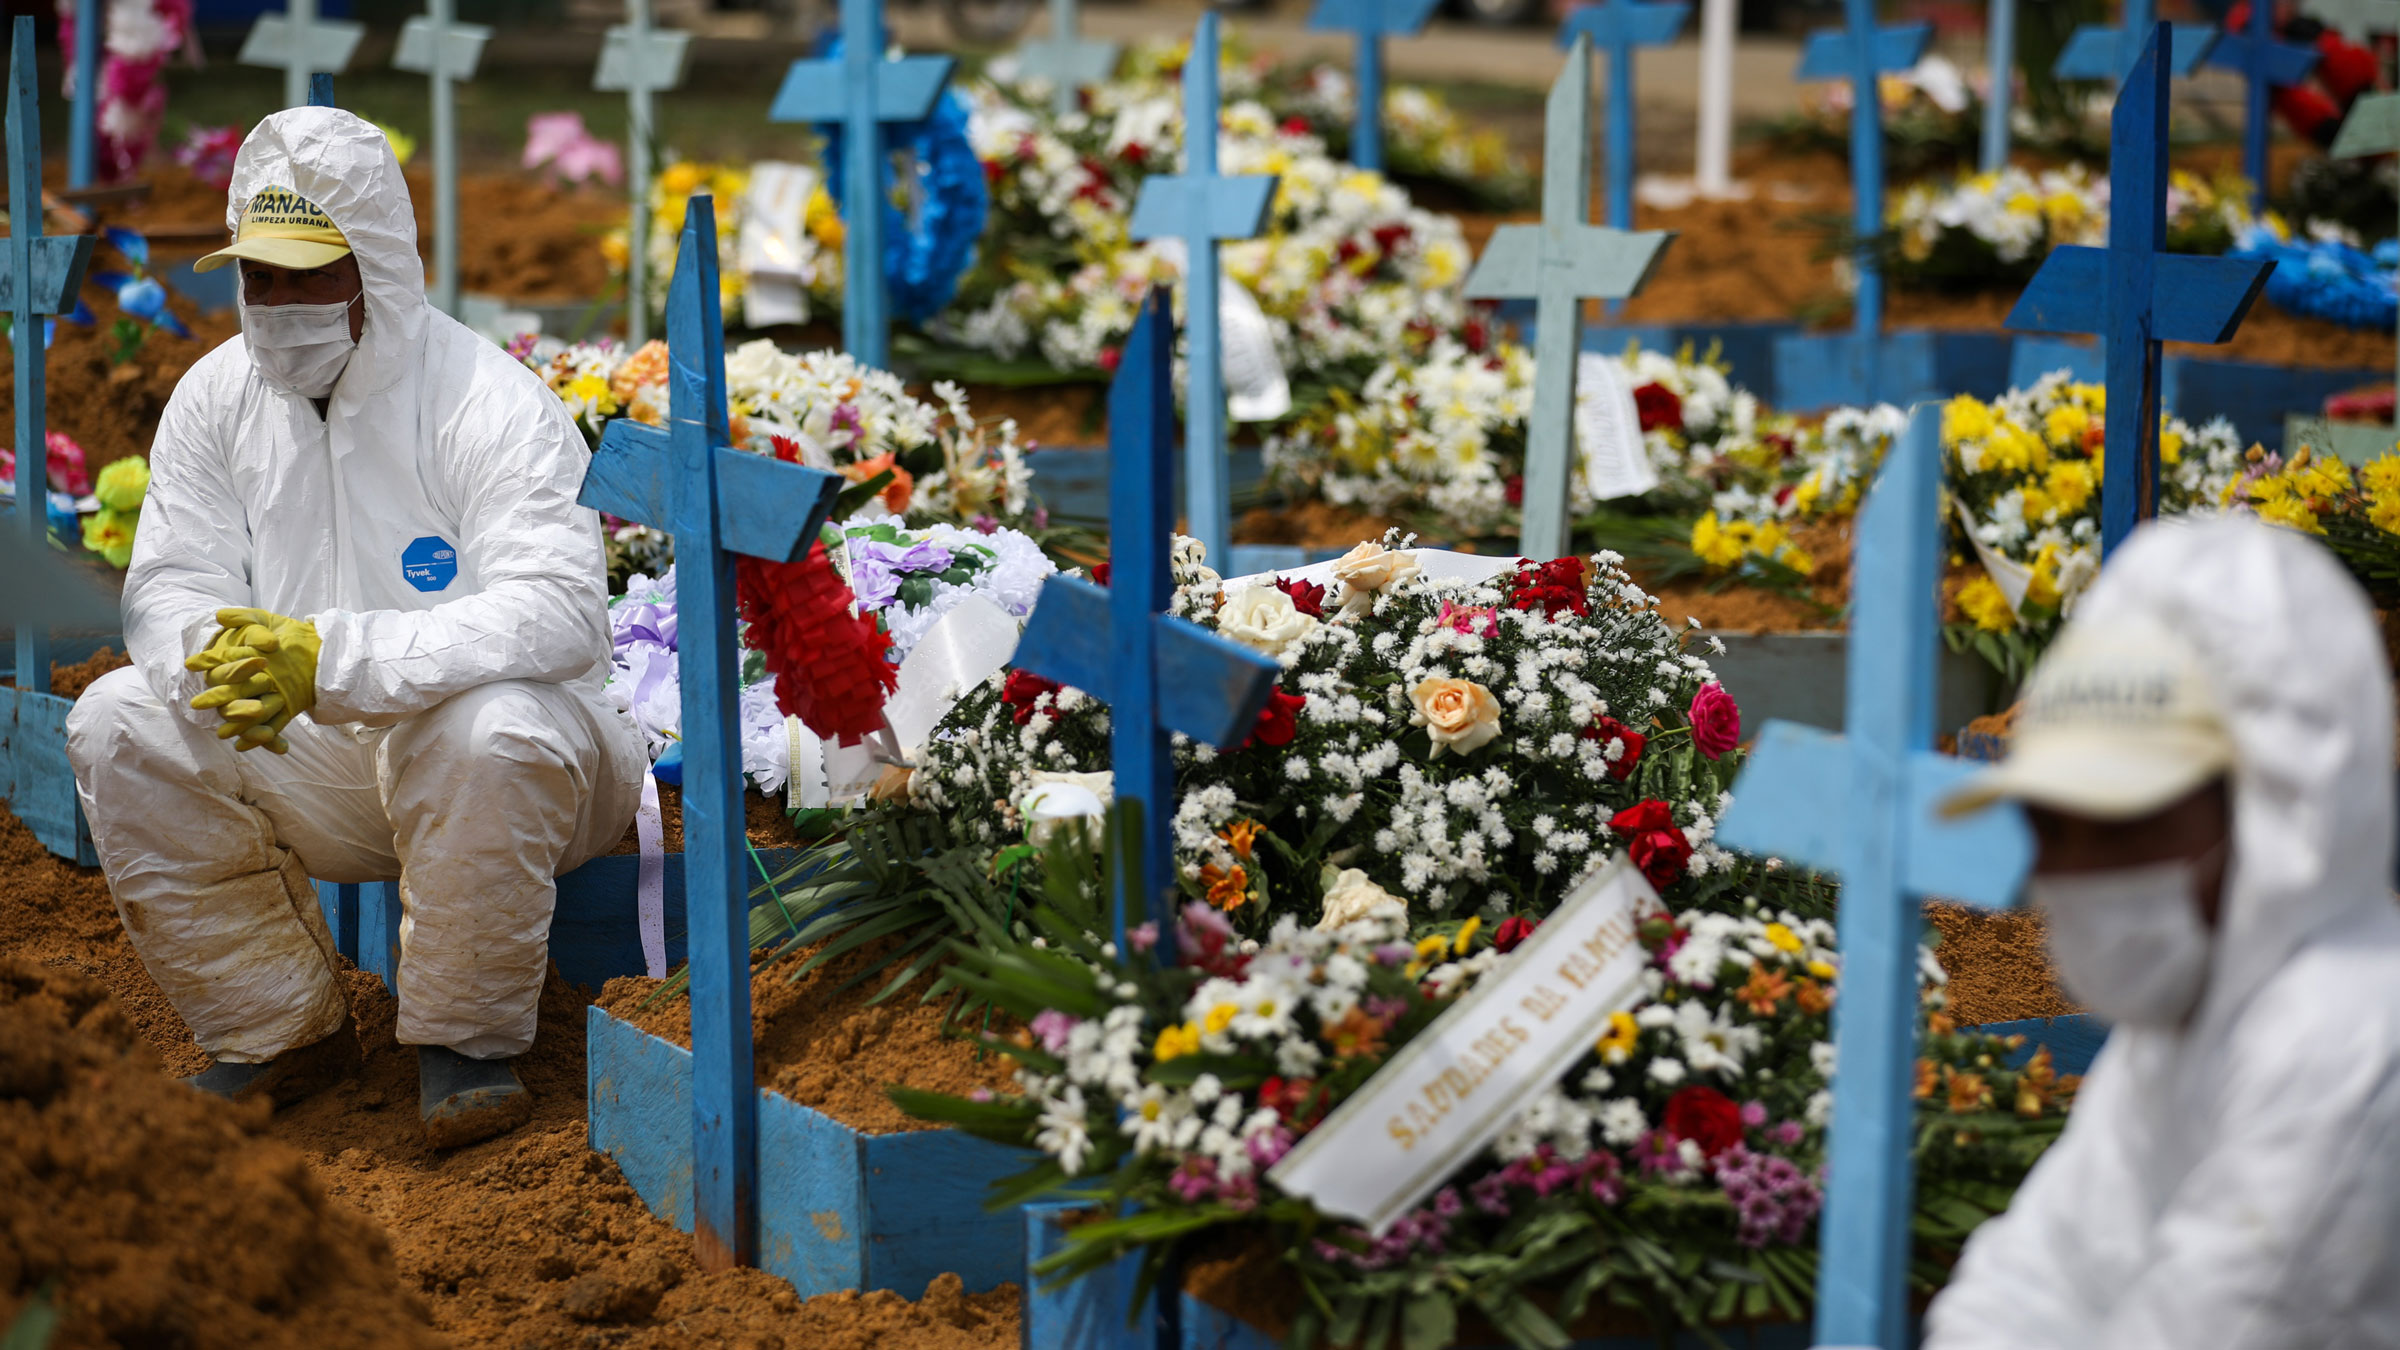 Cemetery workers sit on graves in January during a funeral at the Nossa Senhora Aparecida Cemetery in Manaus, Brazil.